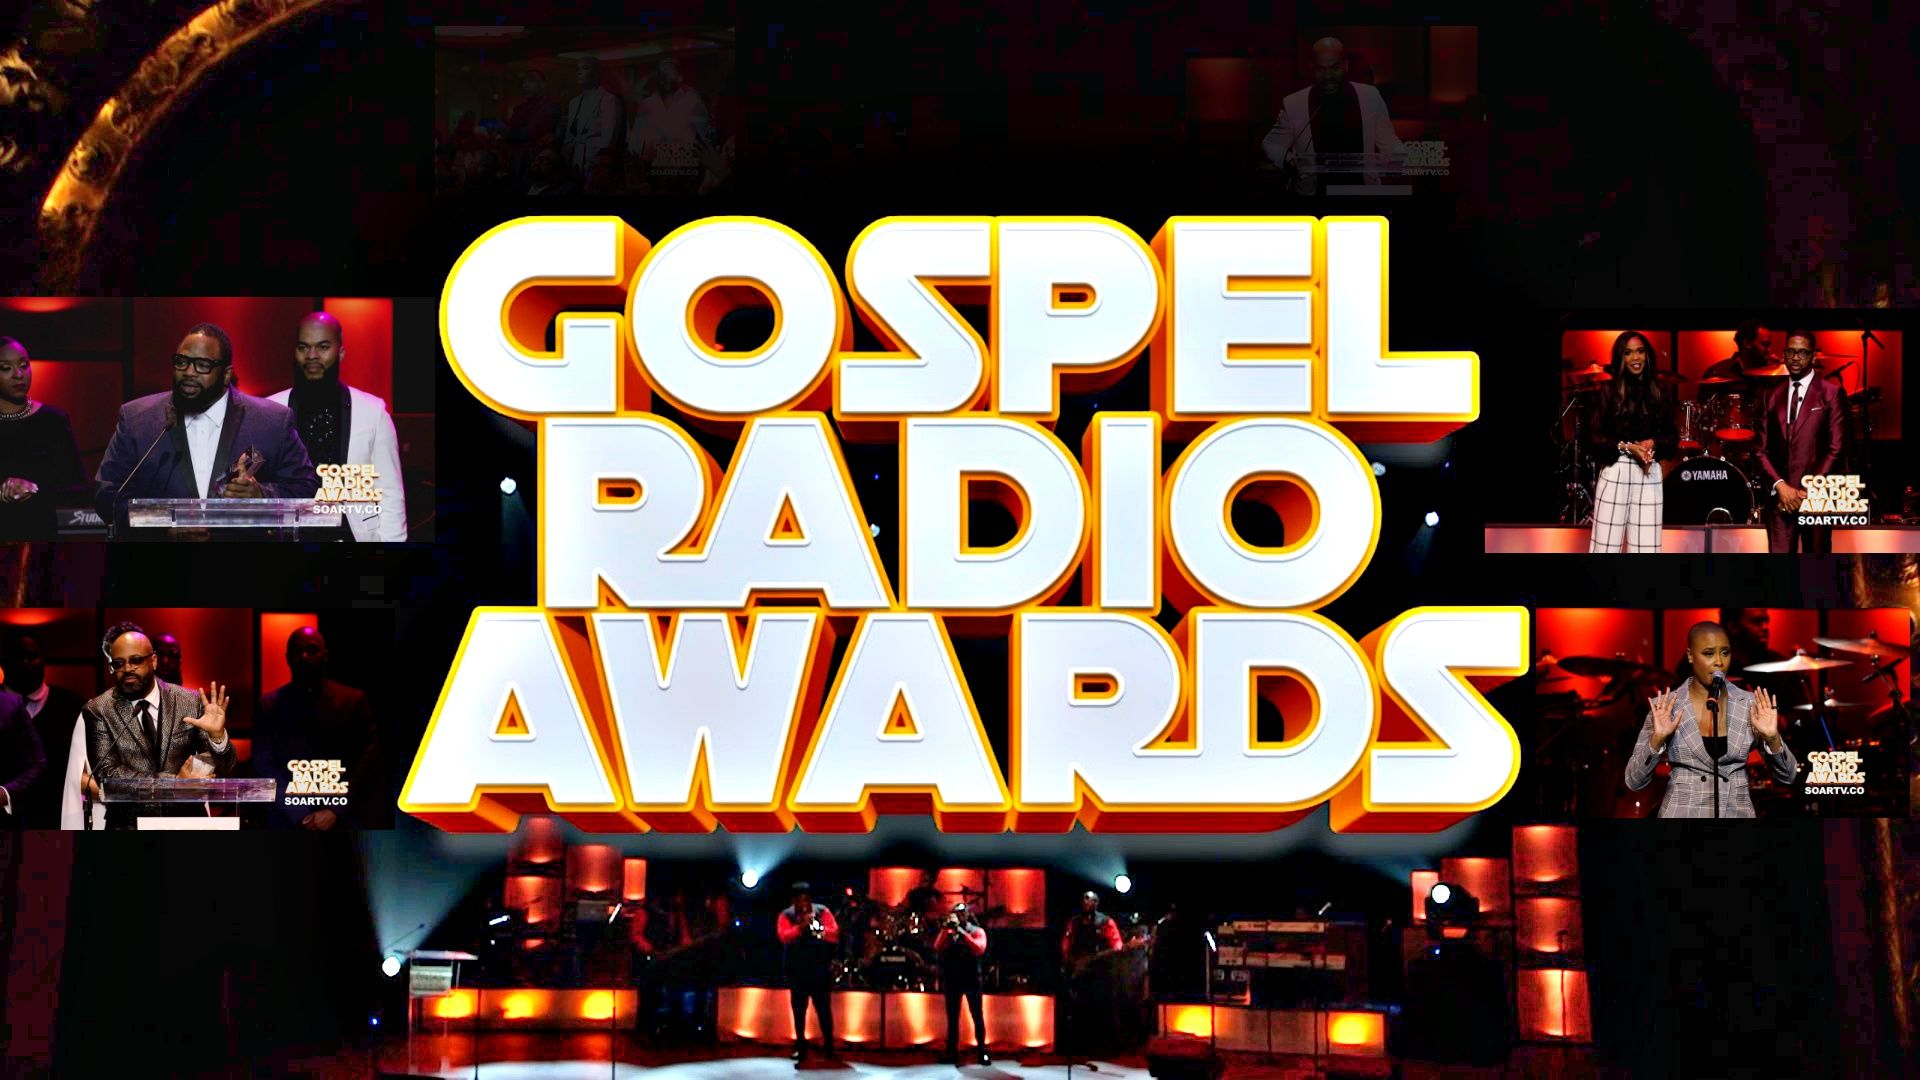 Gospel Radio Awards